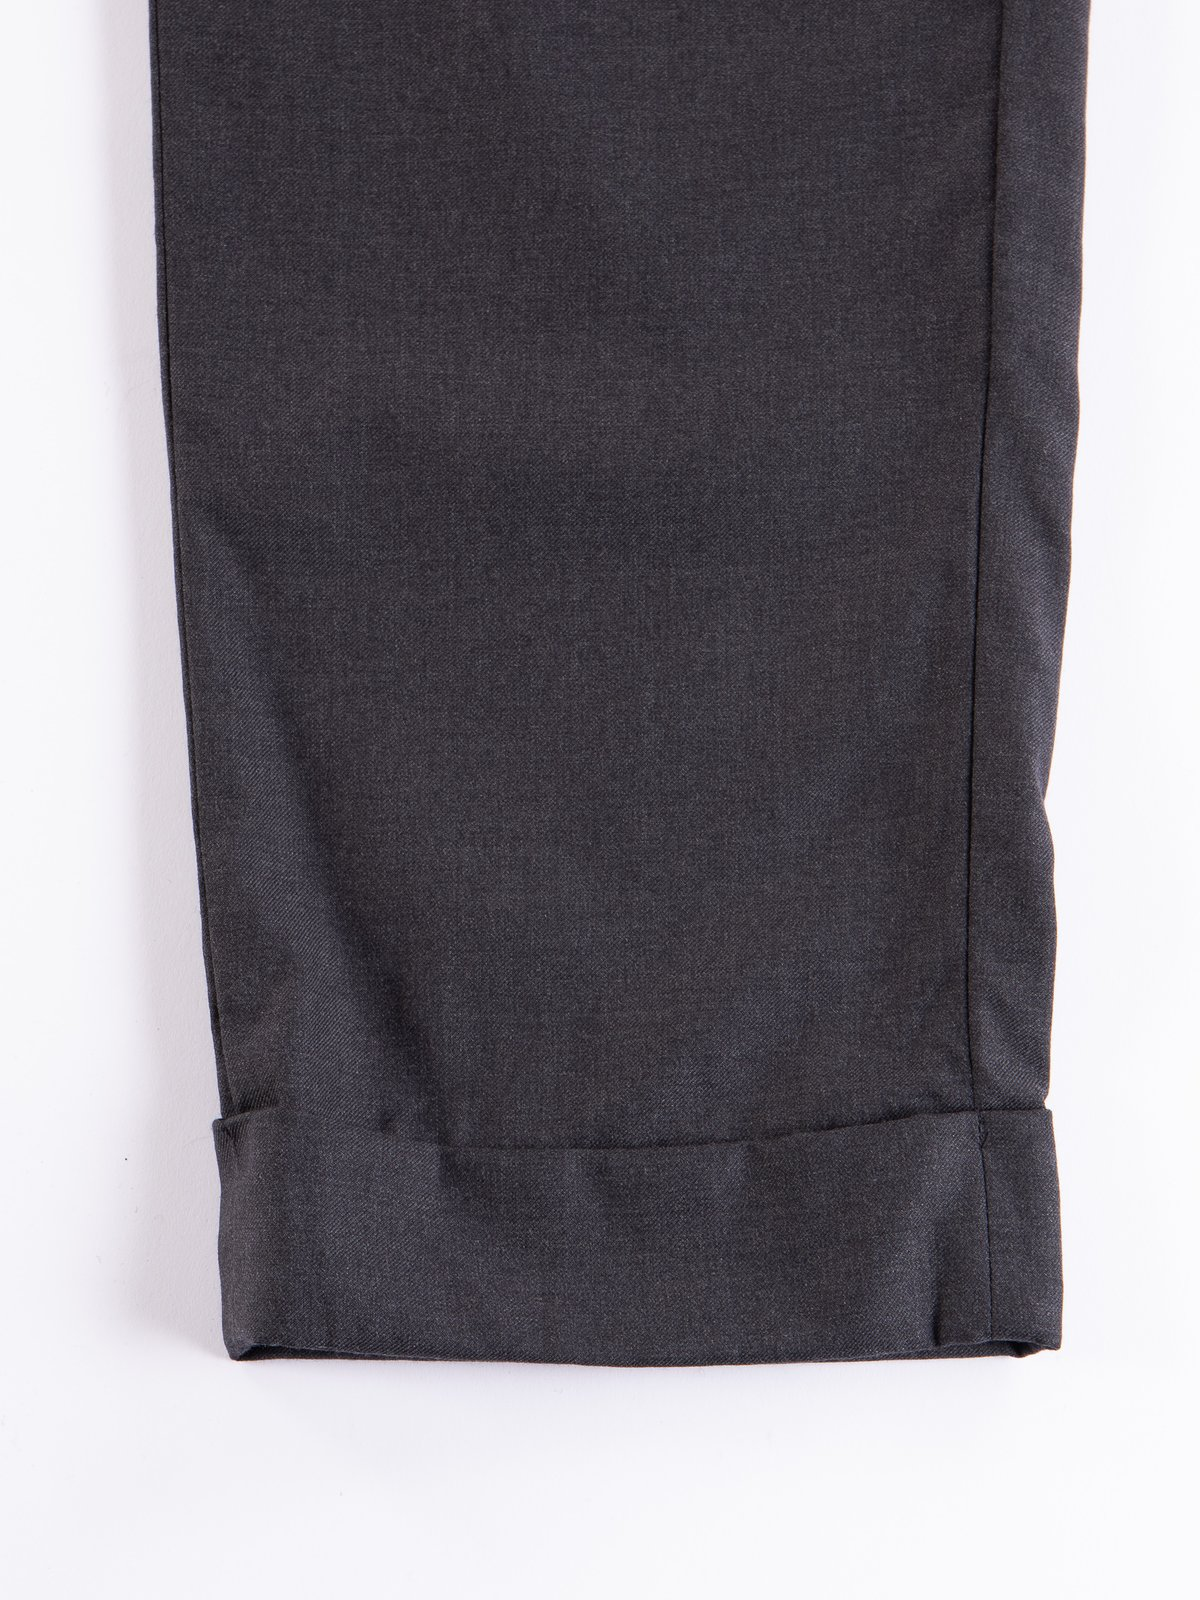 Charcoal Worsted Wool Gabardine Andover Pant - Image 5